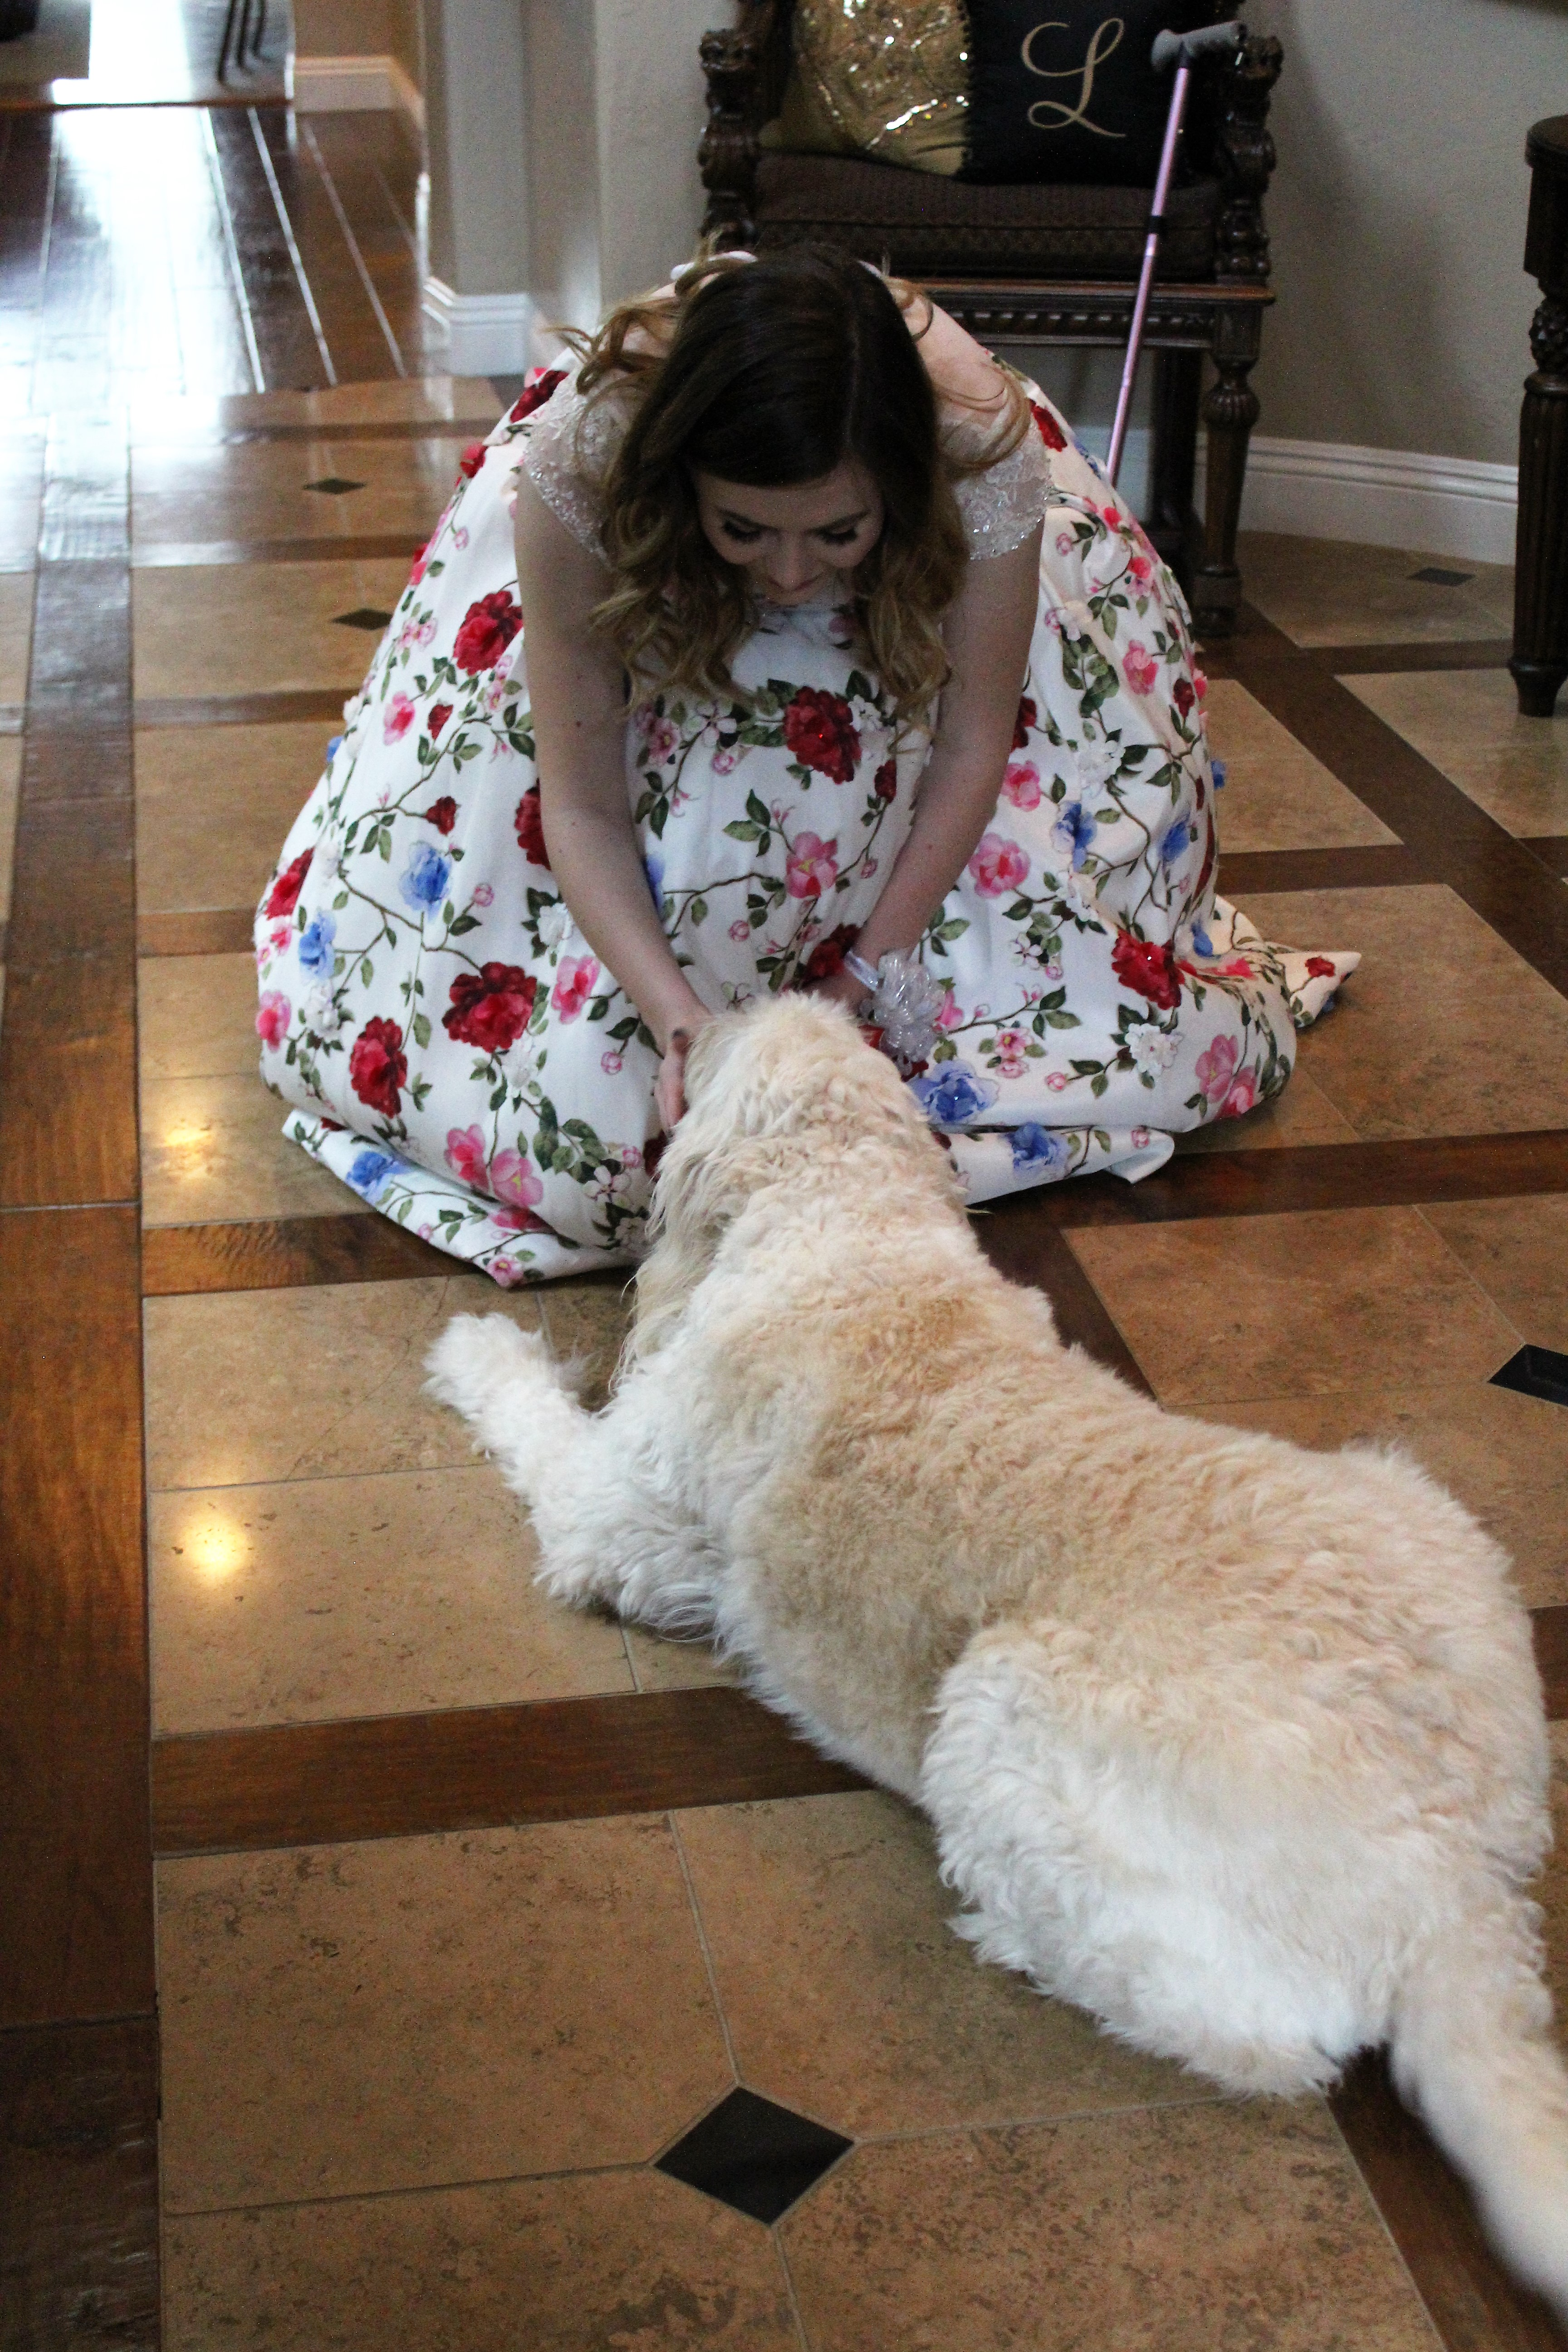 The writer petting her doc while in a prom dress.